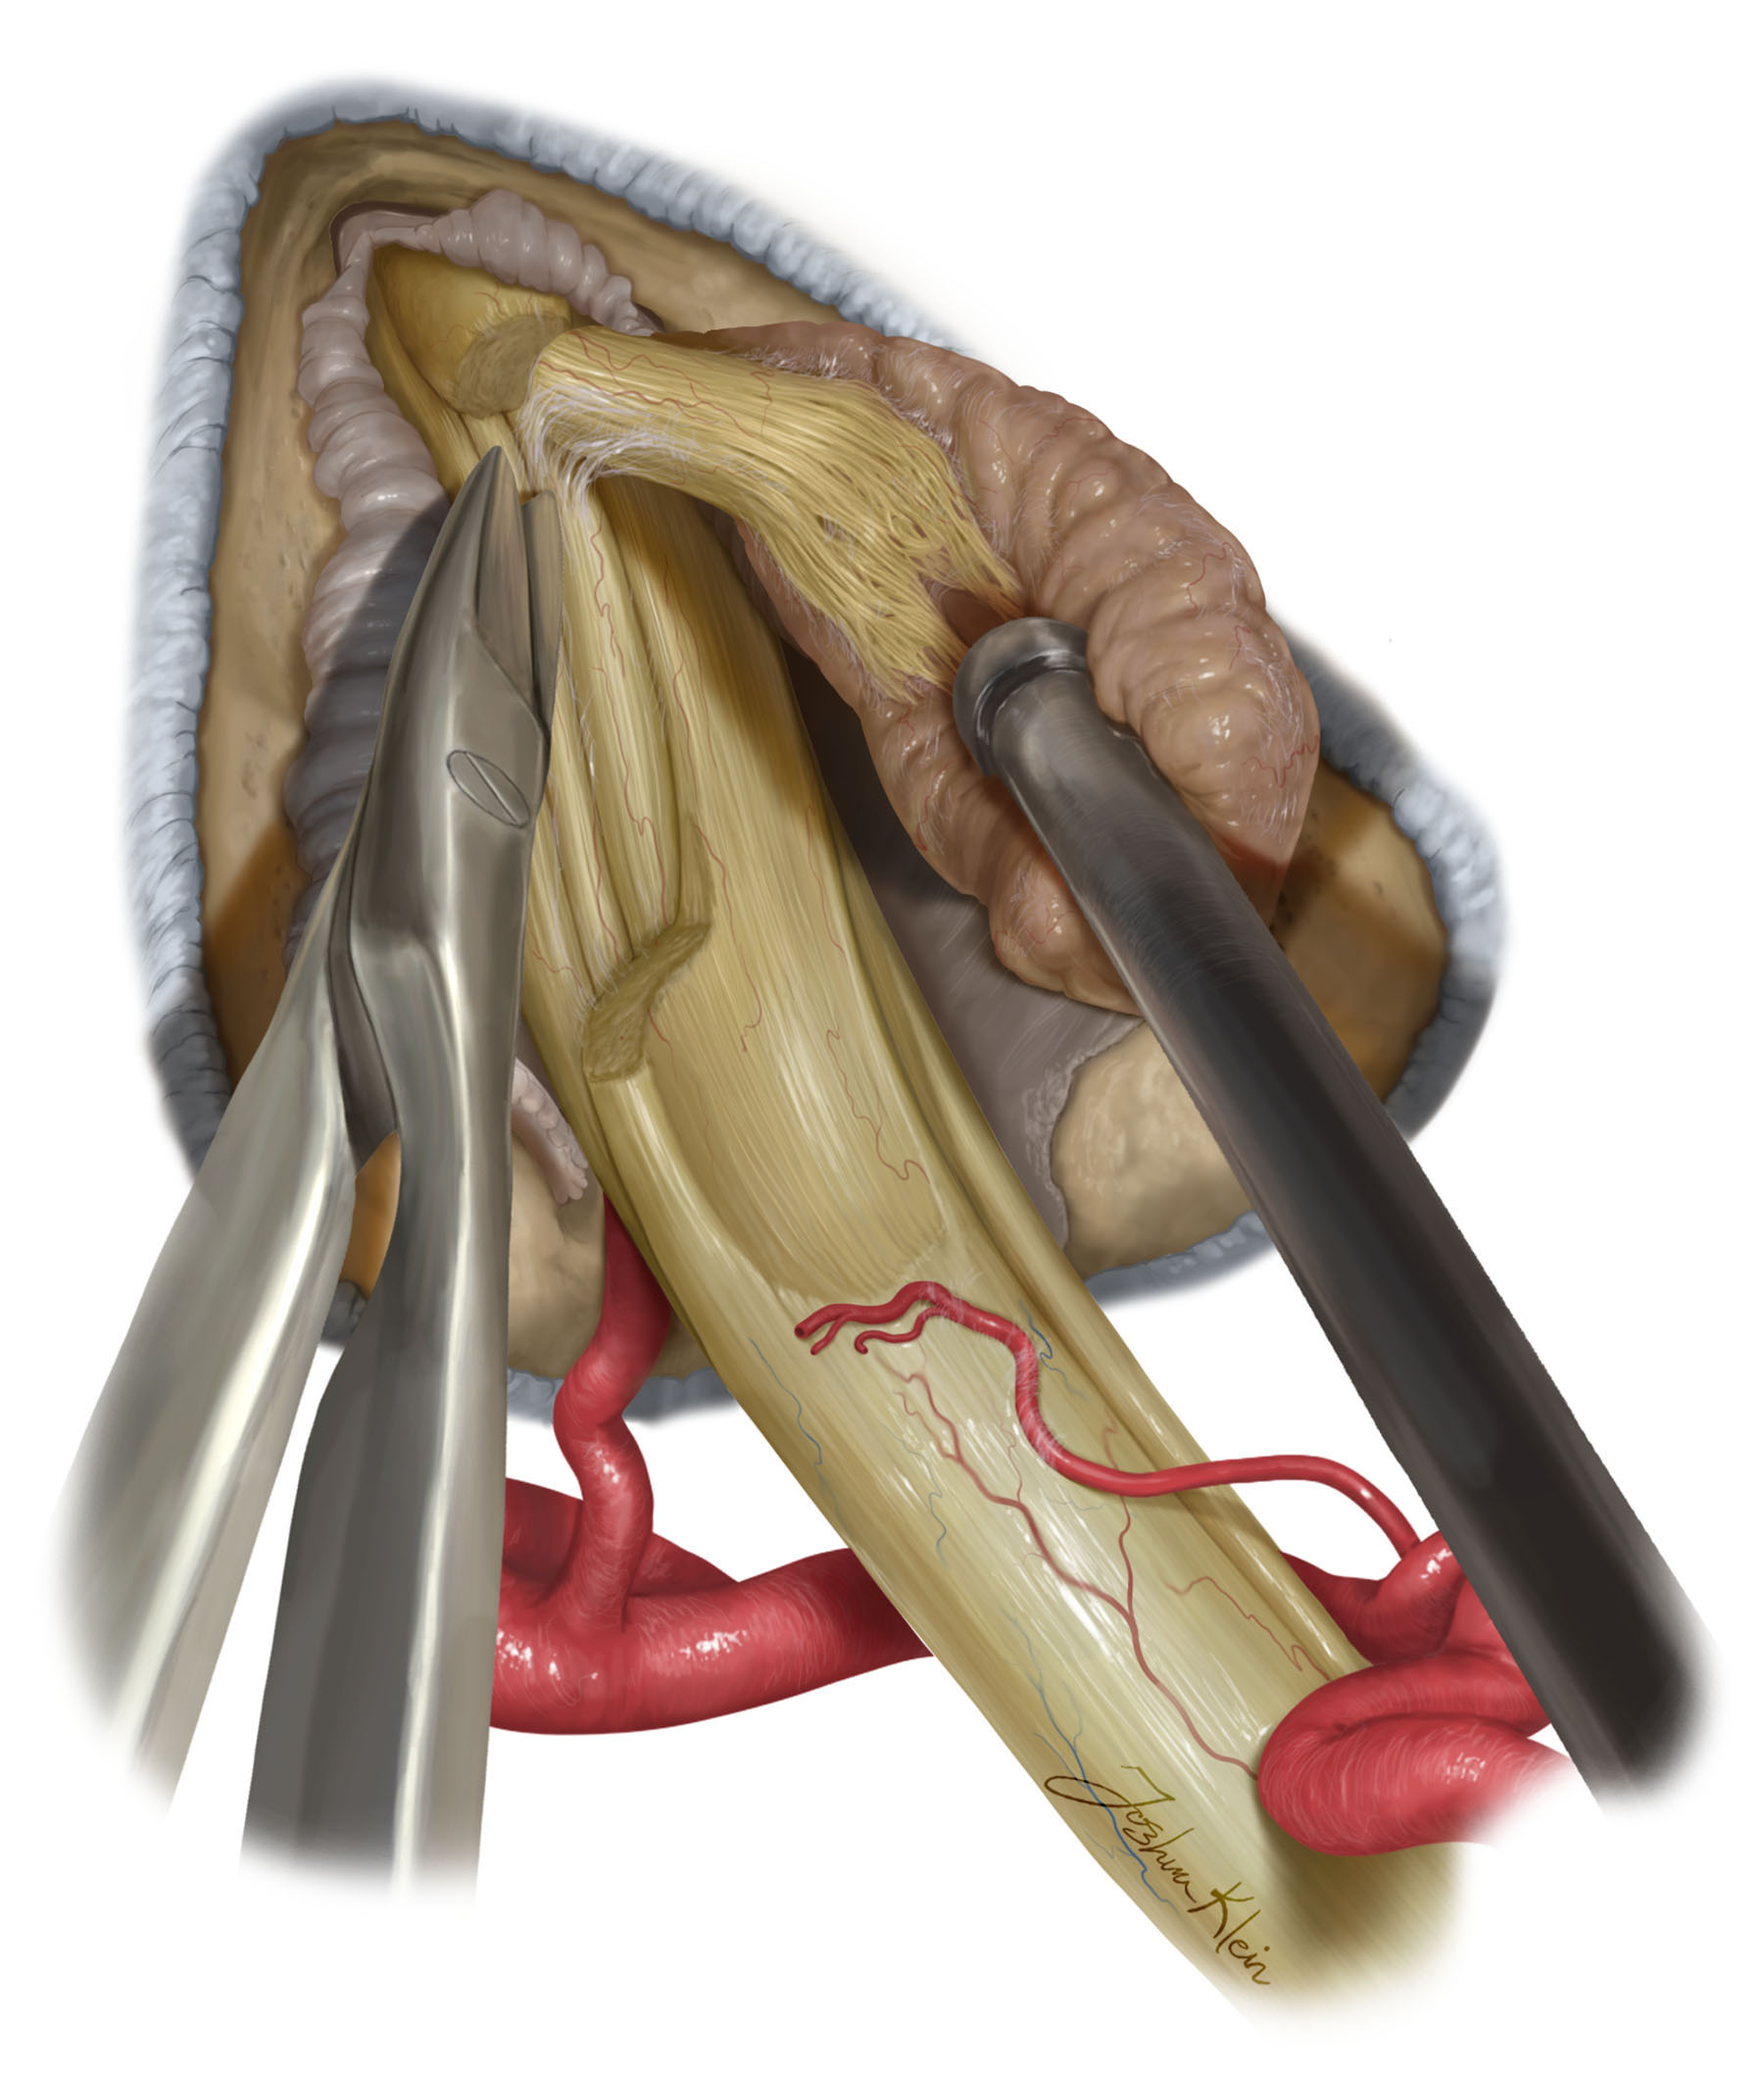 Figure 10: Final attachments are dissected from the facial and inferior vestibular nerves. Physiologic preservation of the facial nerve is assessed by direct stimulation of the nerve.